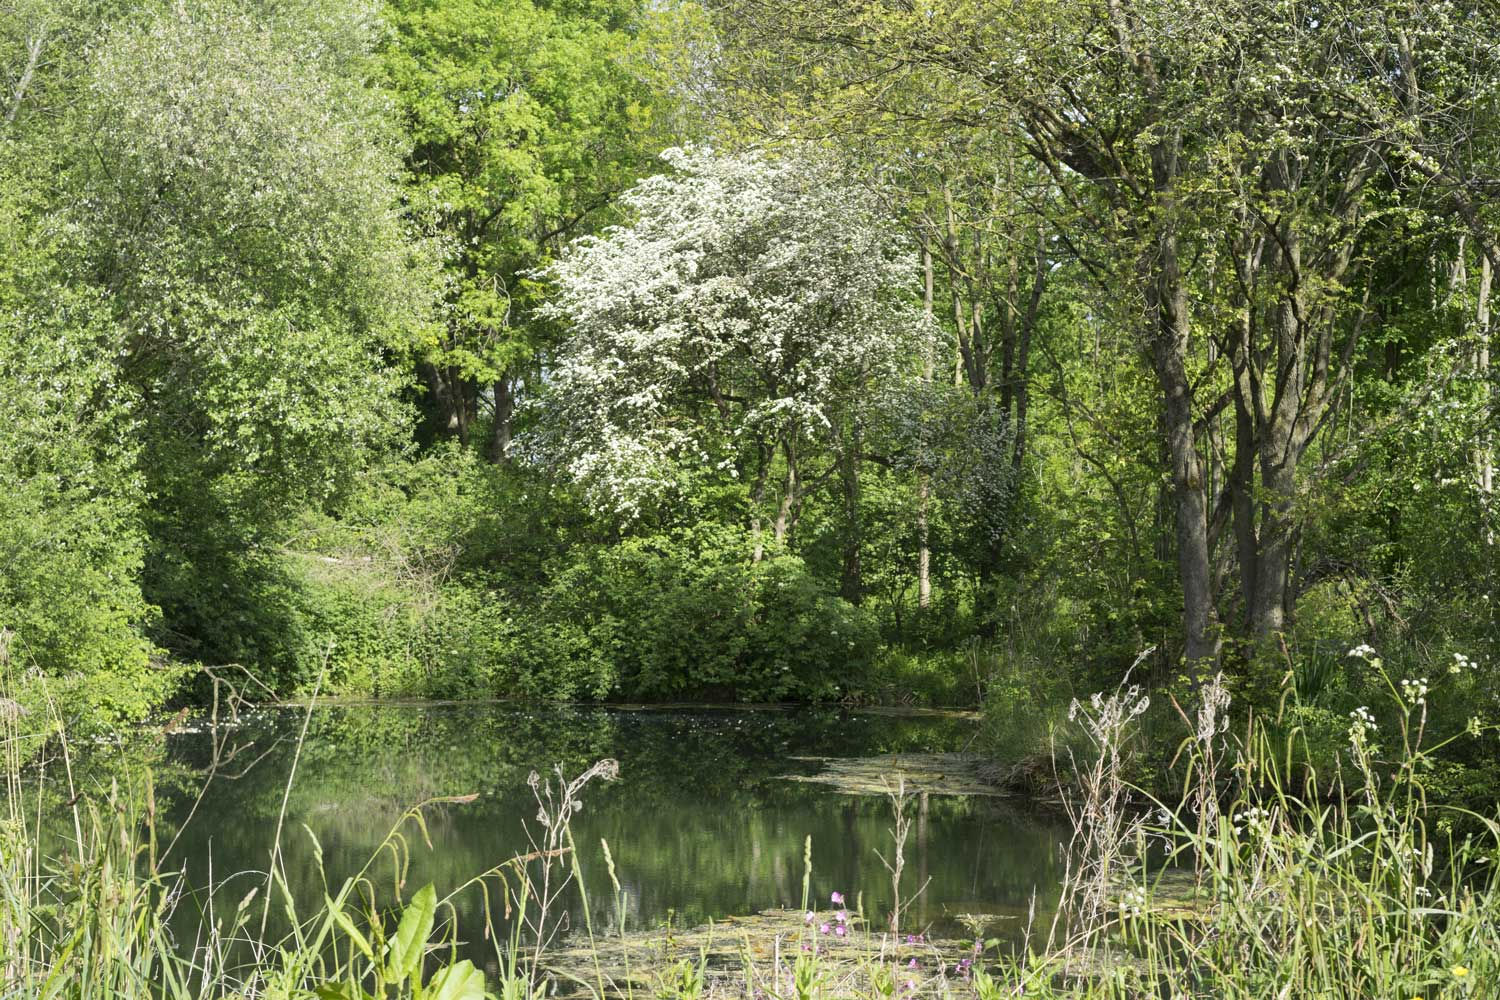 The-pond-in-the-wood